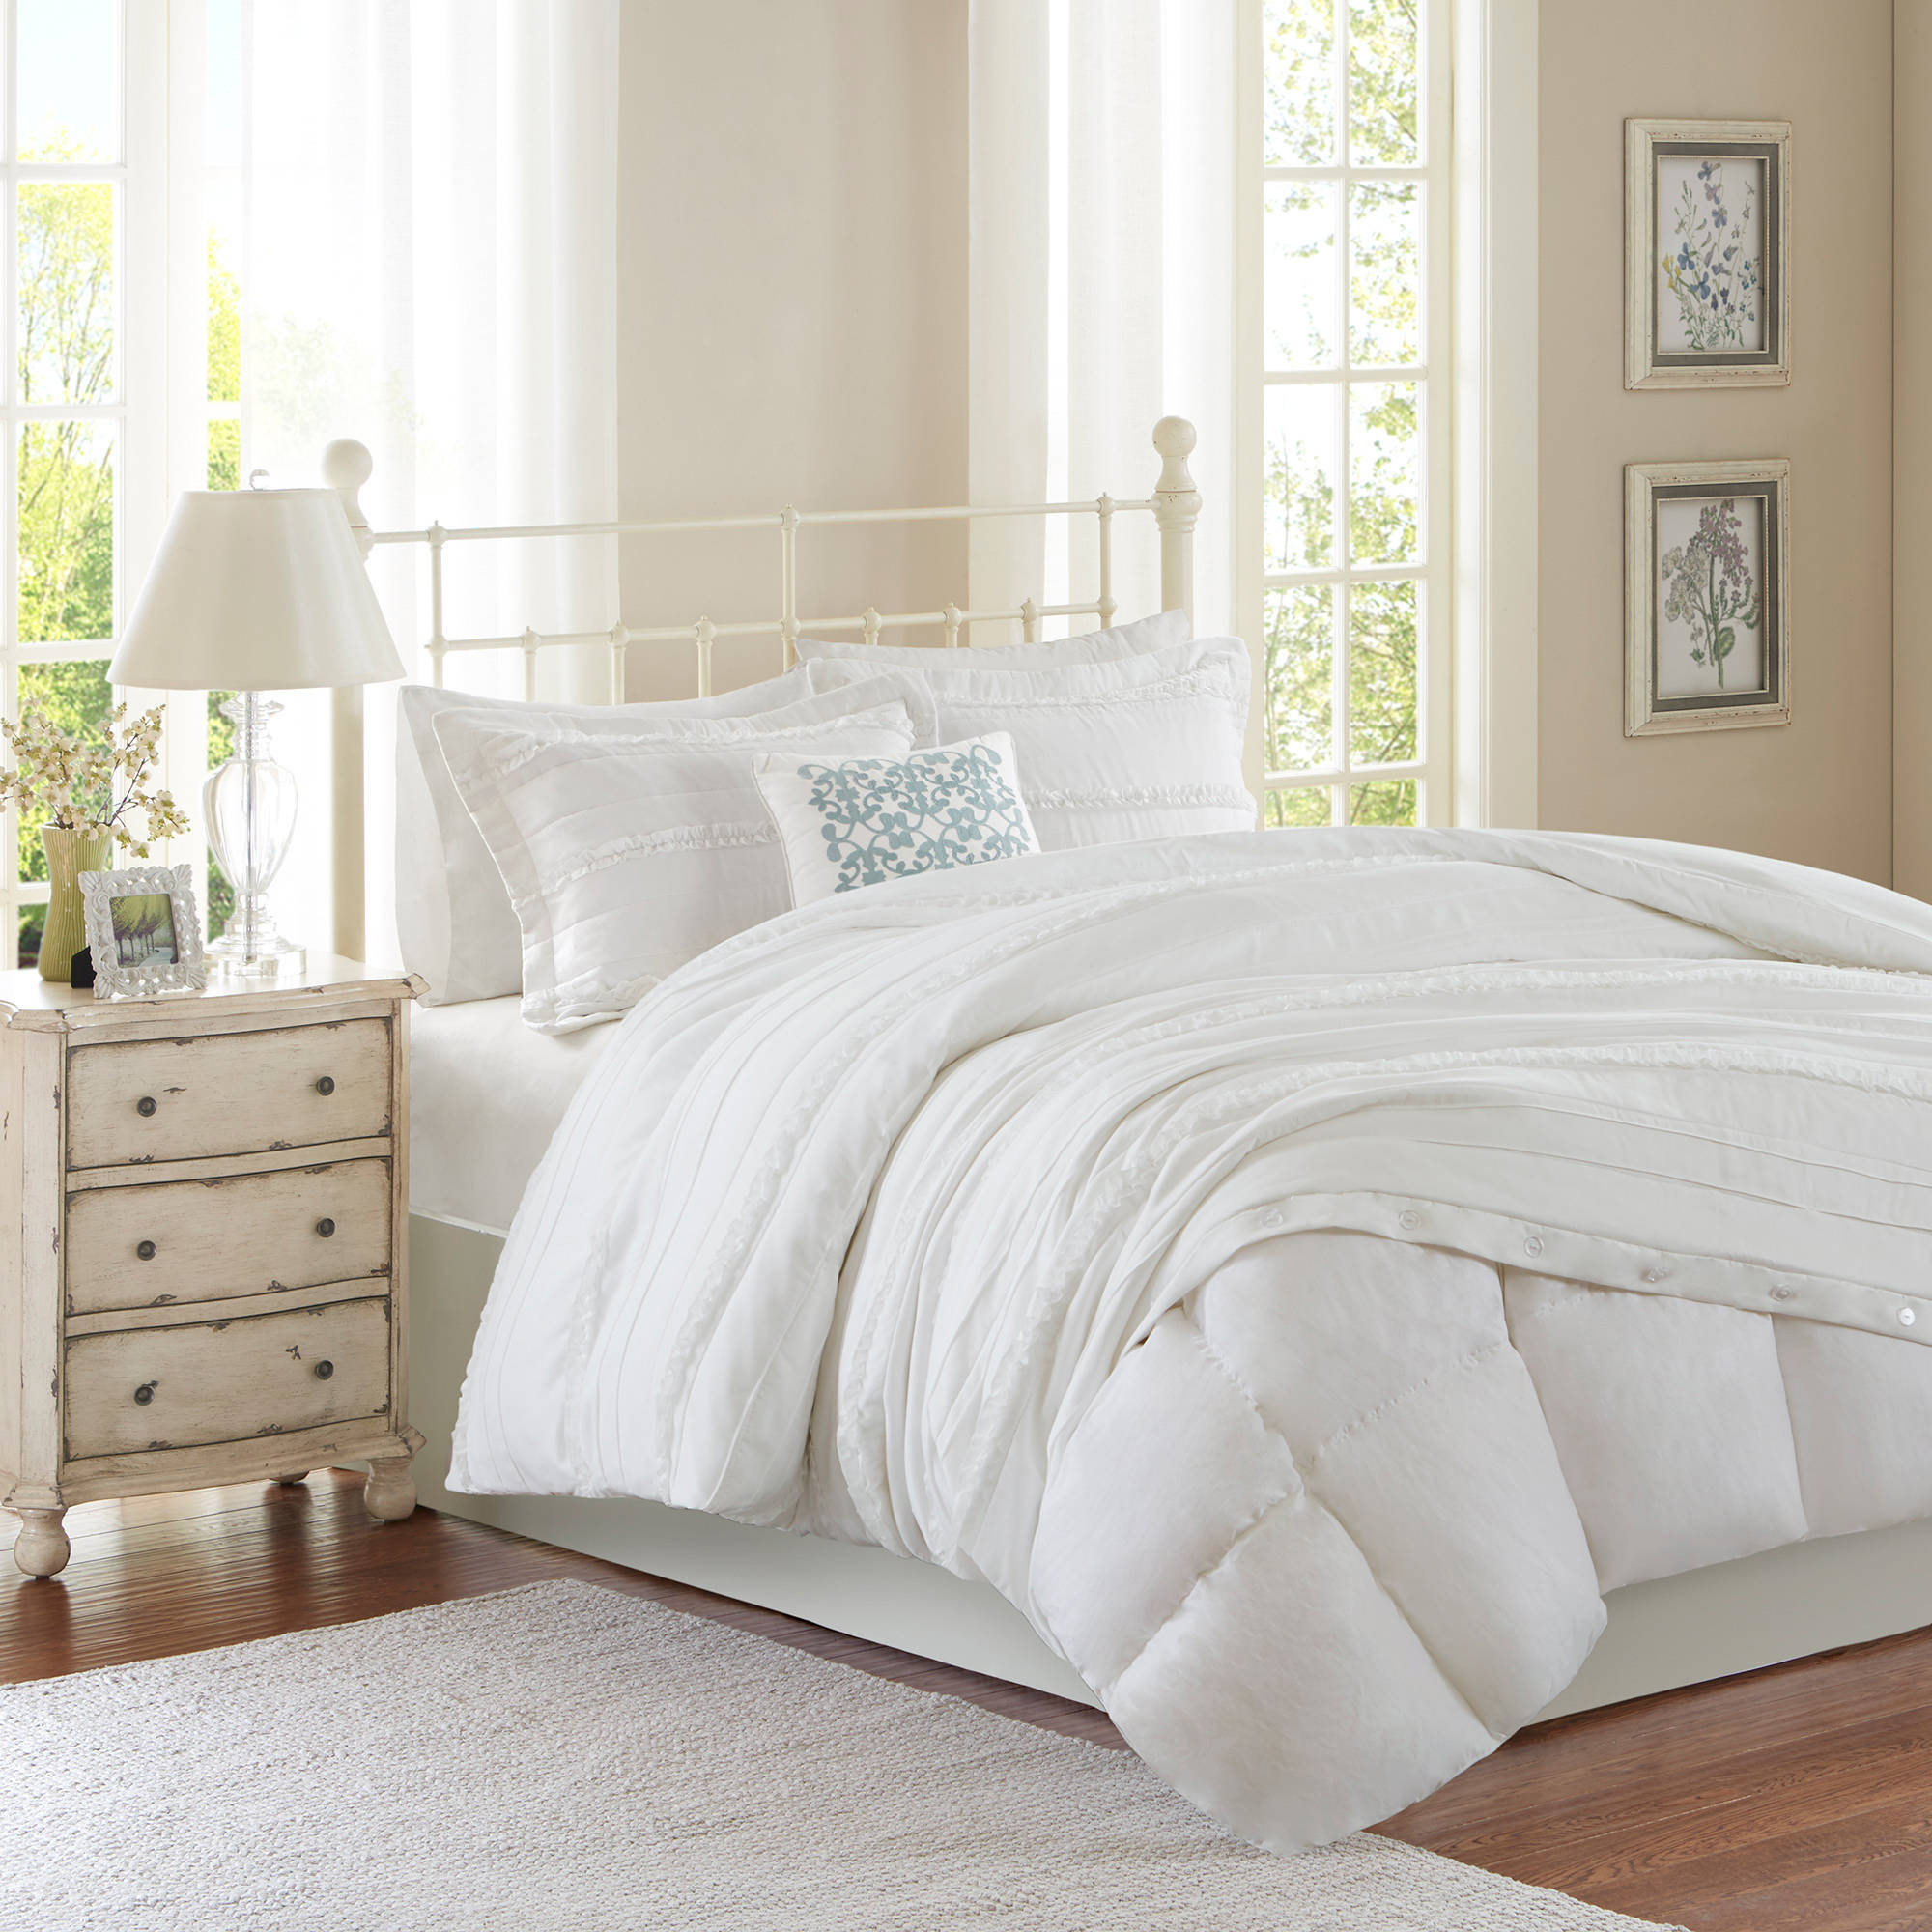 Home Essence Alexis 2-in-1 Duvet Set